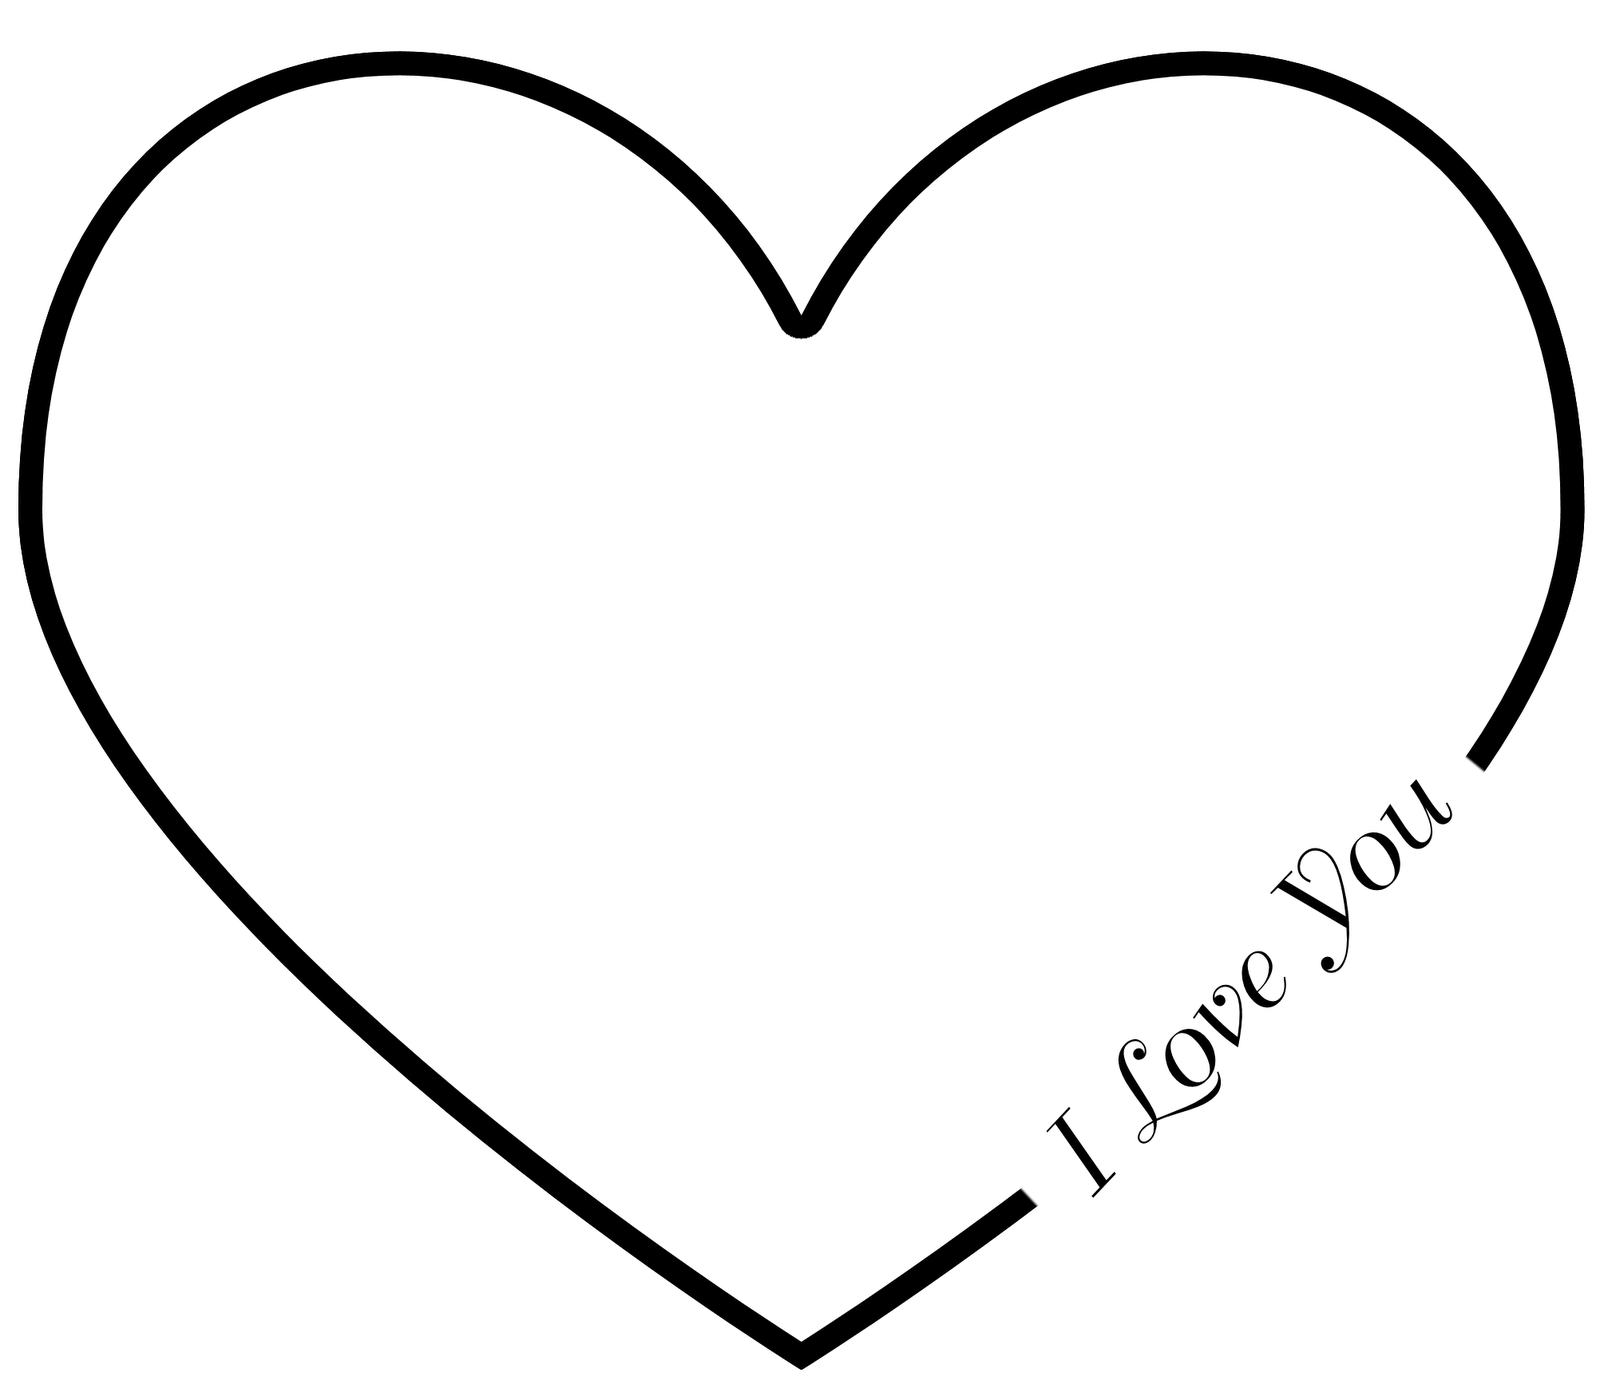 Carved Heart Outline Clipart